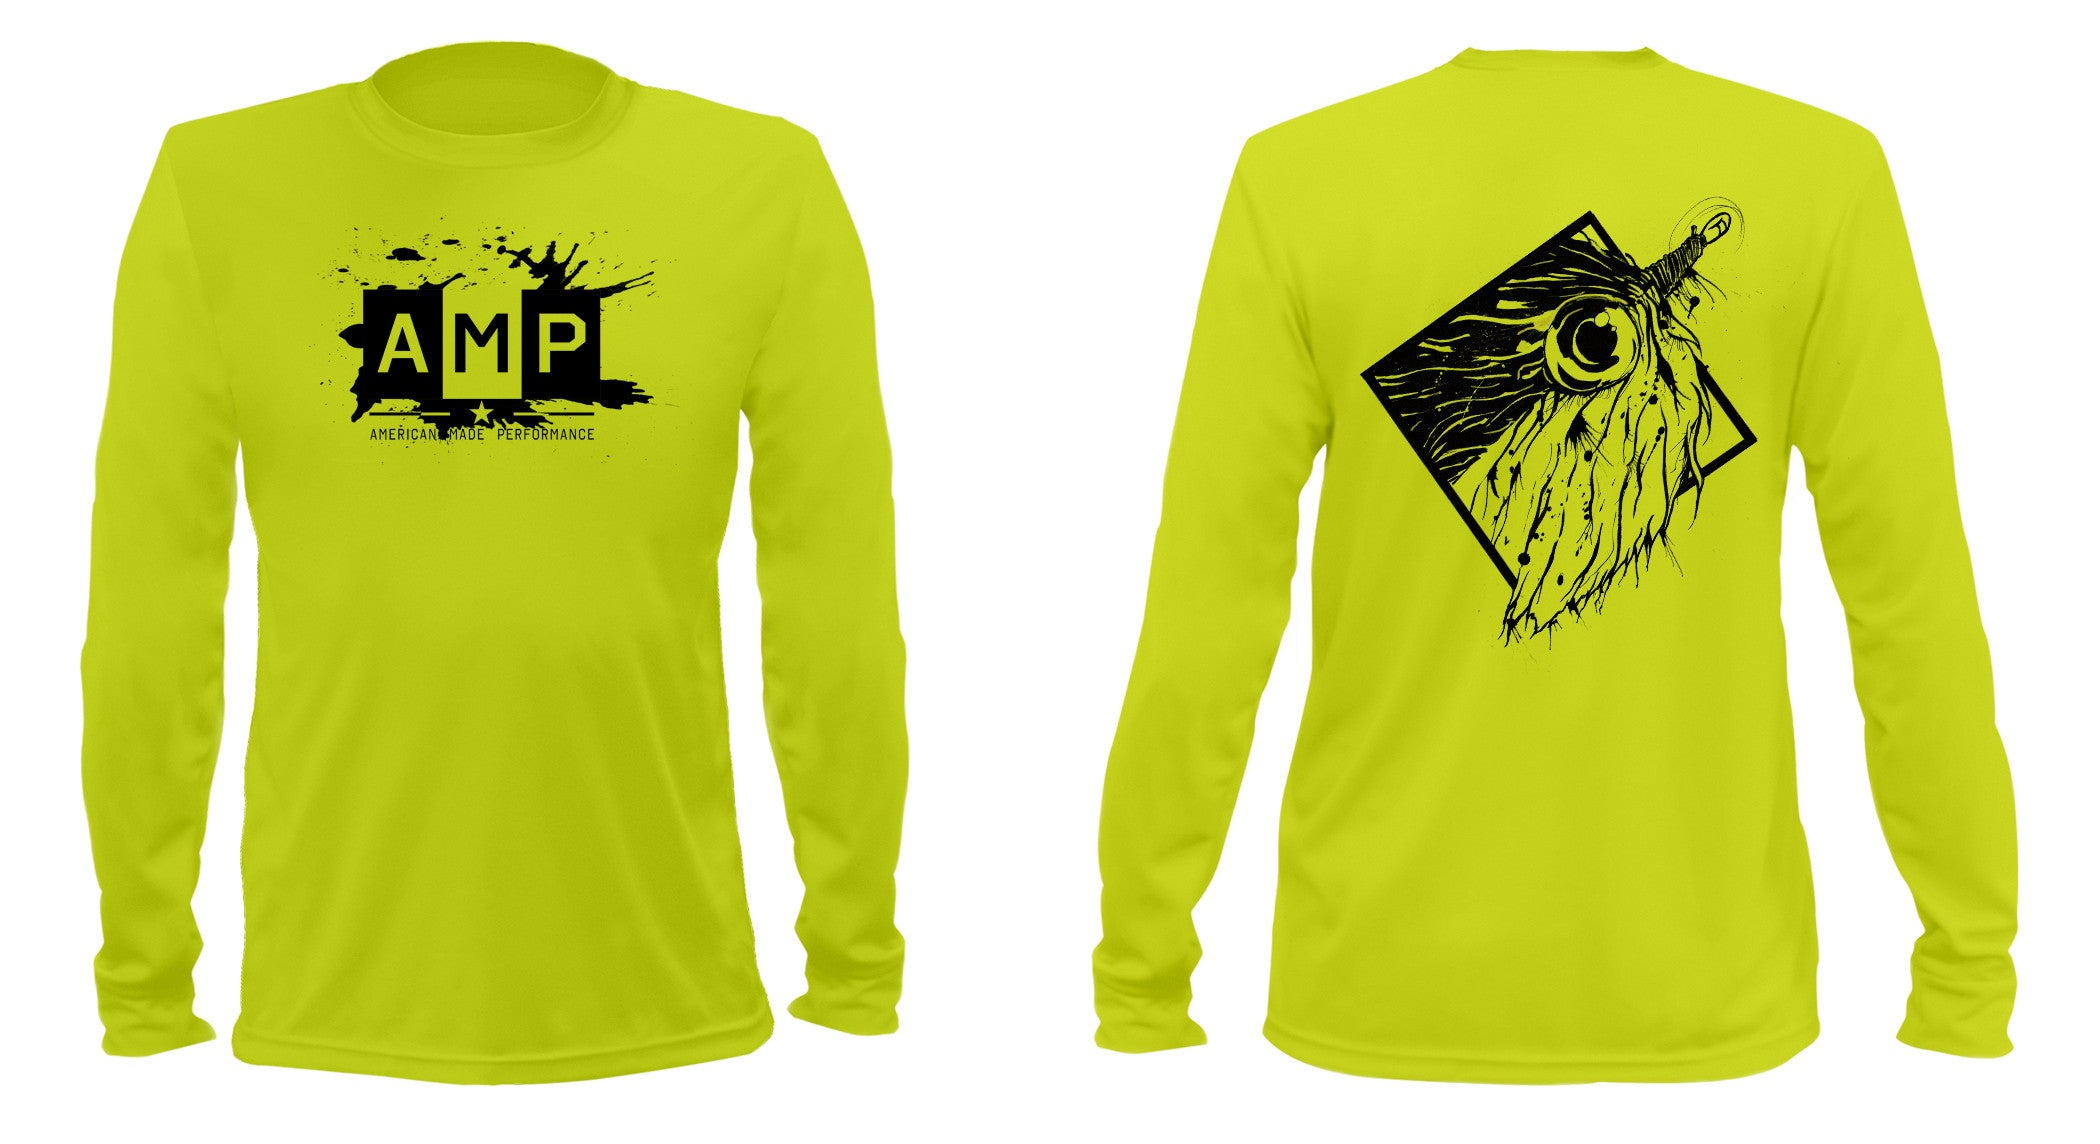 AMP Performance Long Sleeve - Peanut Butter Fly